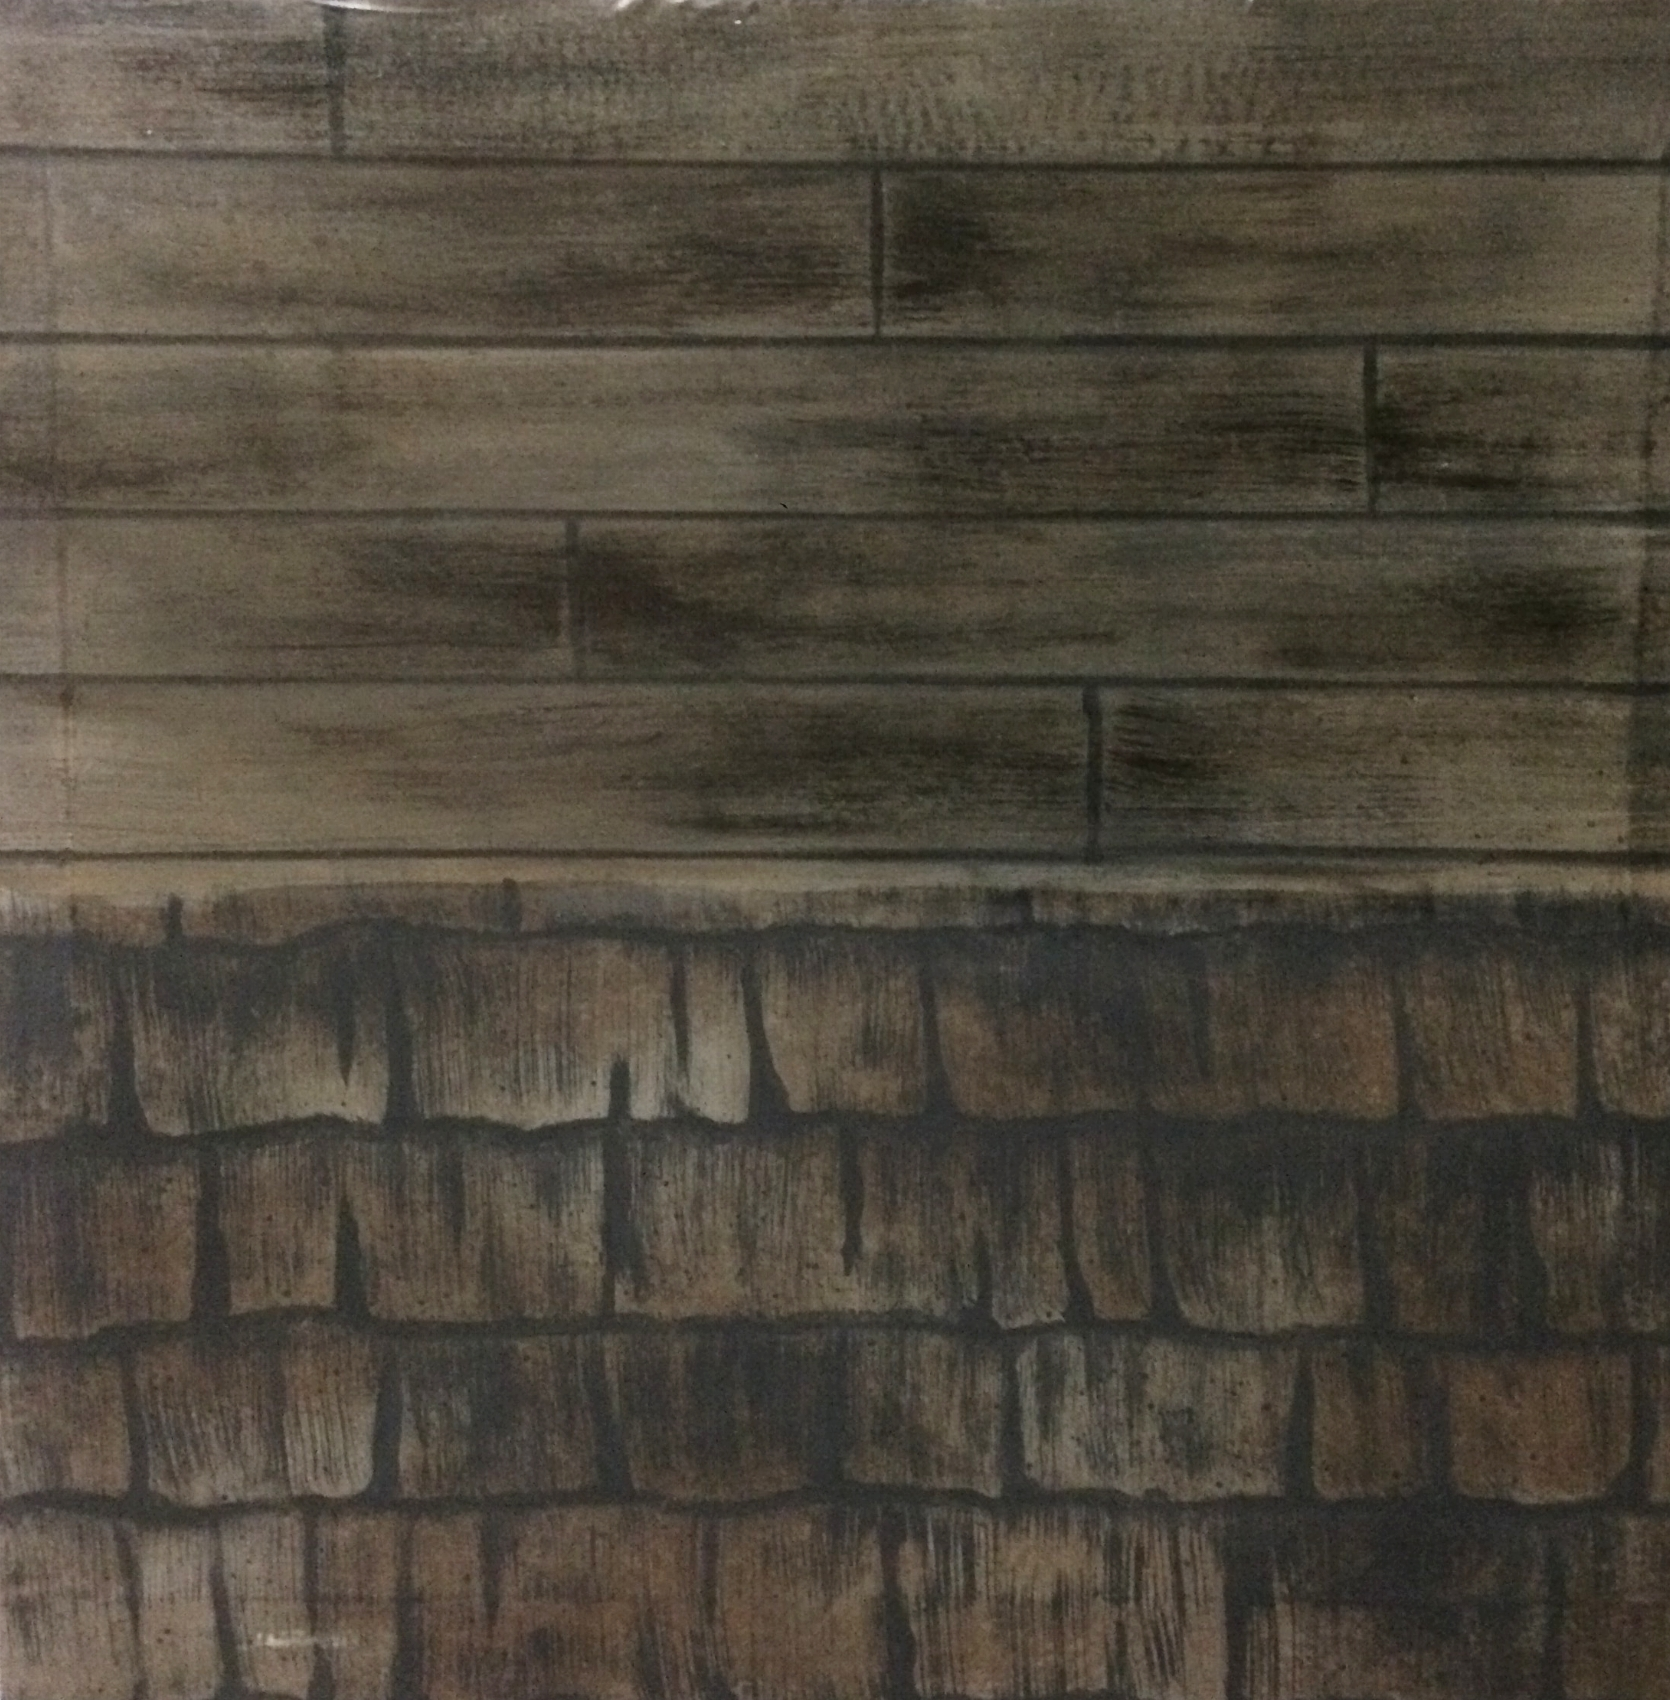 Wooden Floor / Rooftop Shingles Paint Sample 2015